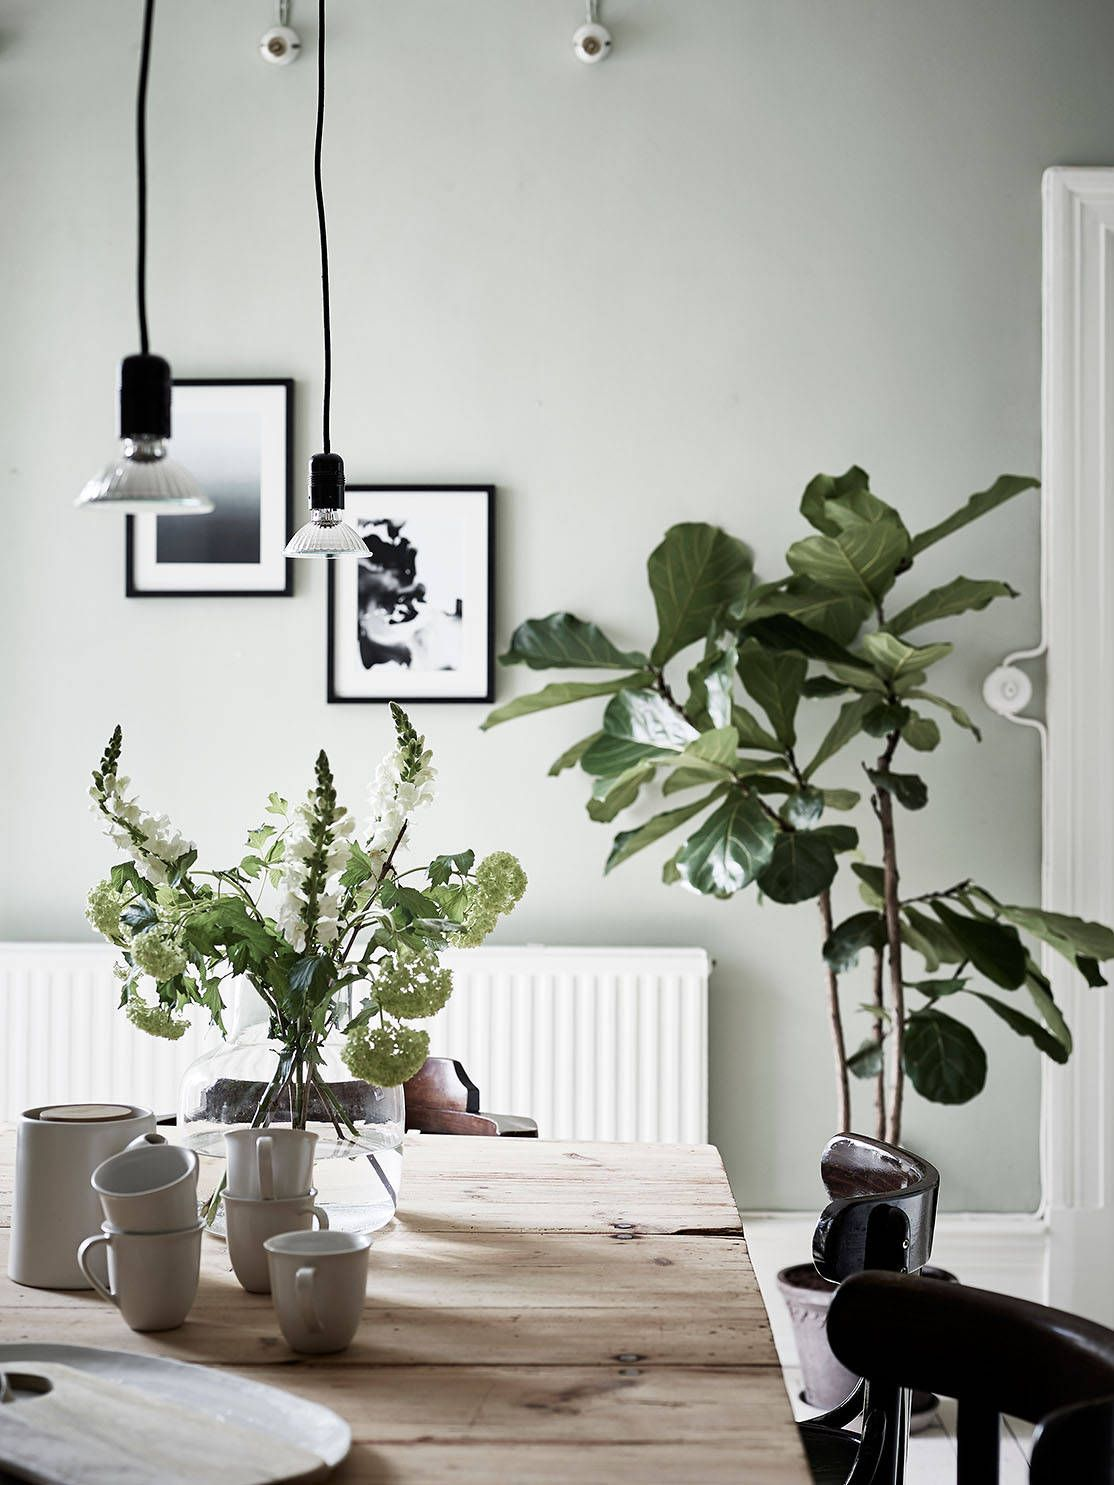 a swedish home with neutral colors rue dining rooms